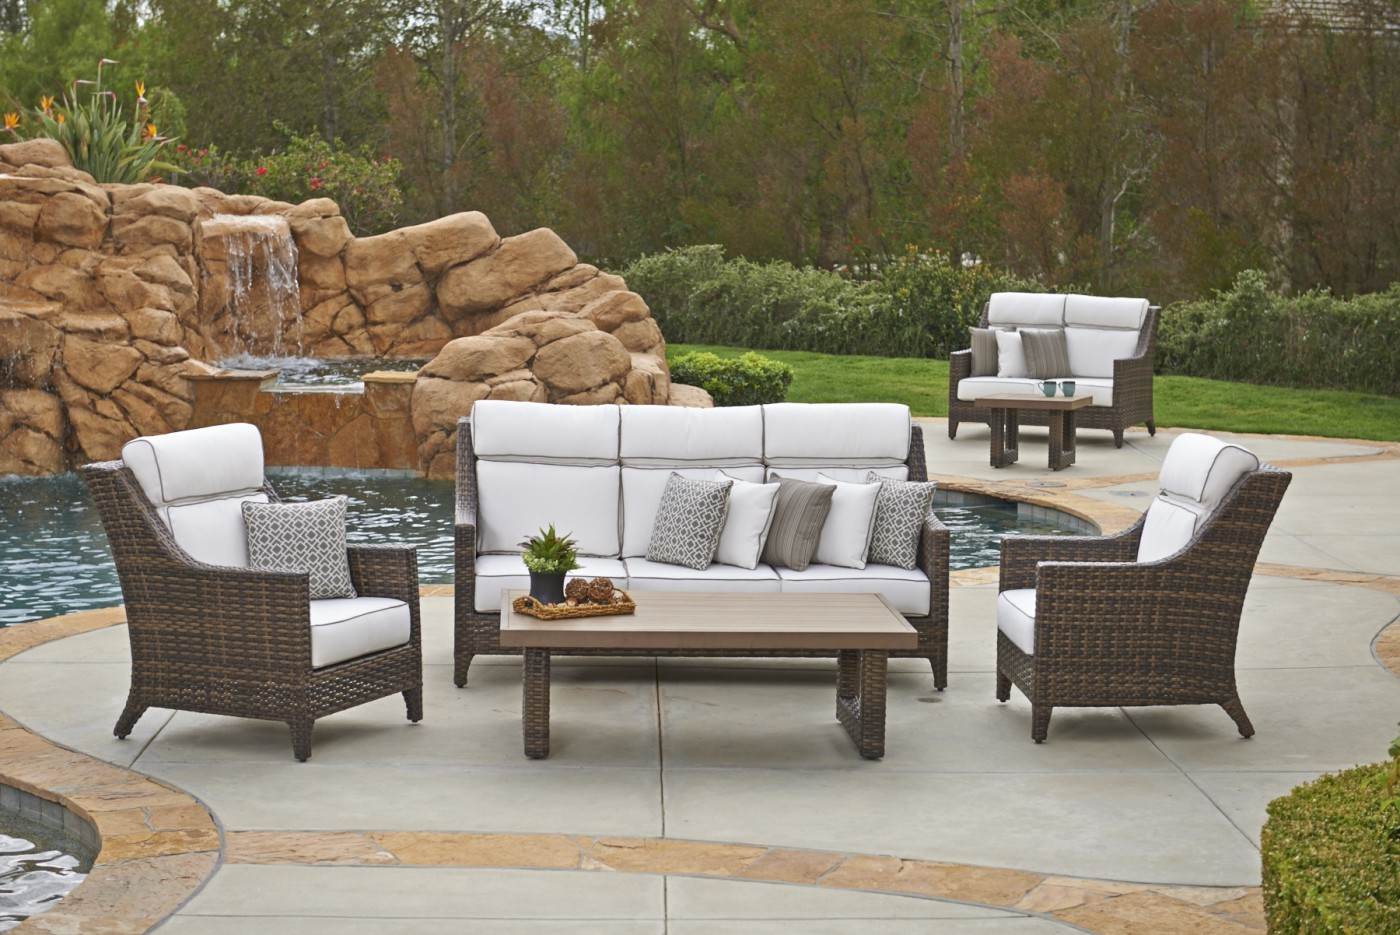 North Cape Avant Georgetown Fireplace And Patio - North cape outdoor furniture